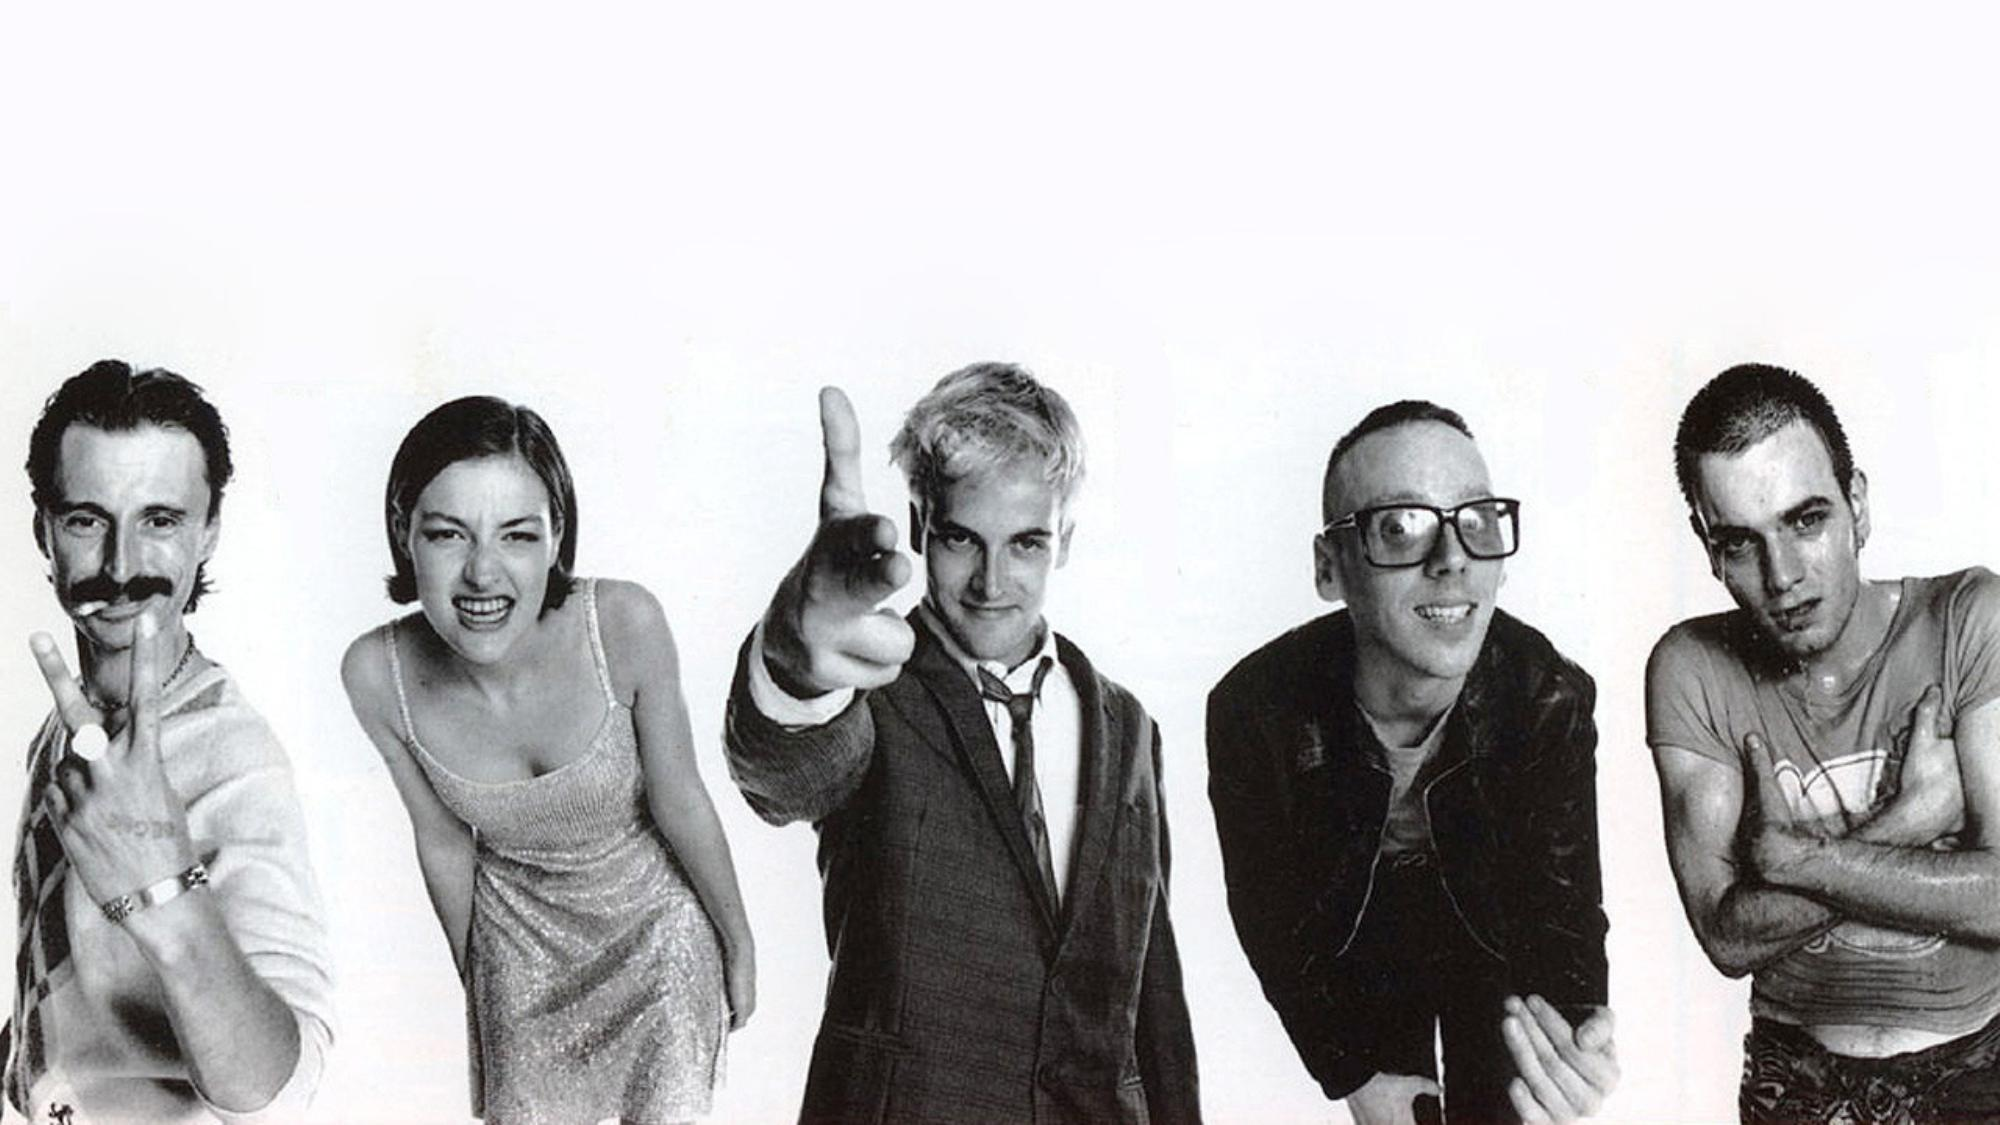 Trainspotting 2 Cast: Here's Who's Set To Return - CINEMABLEND